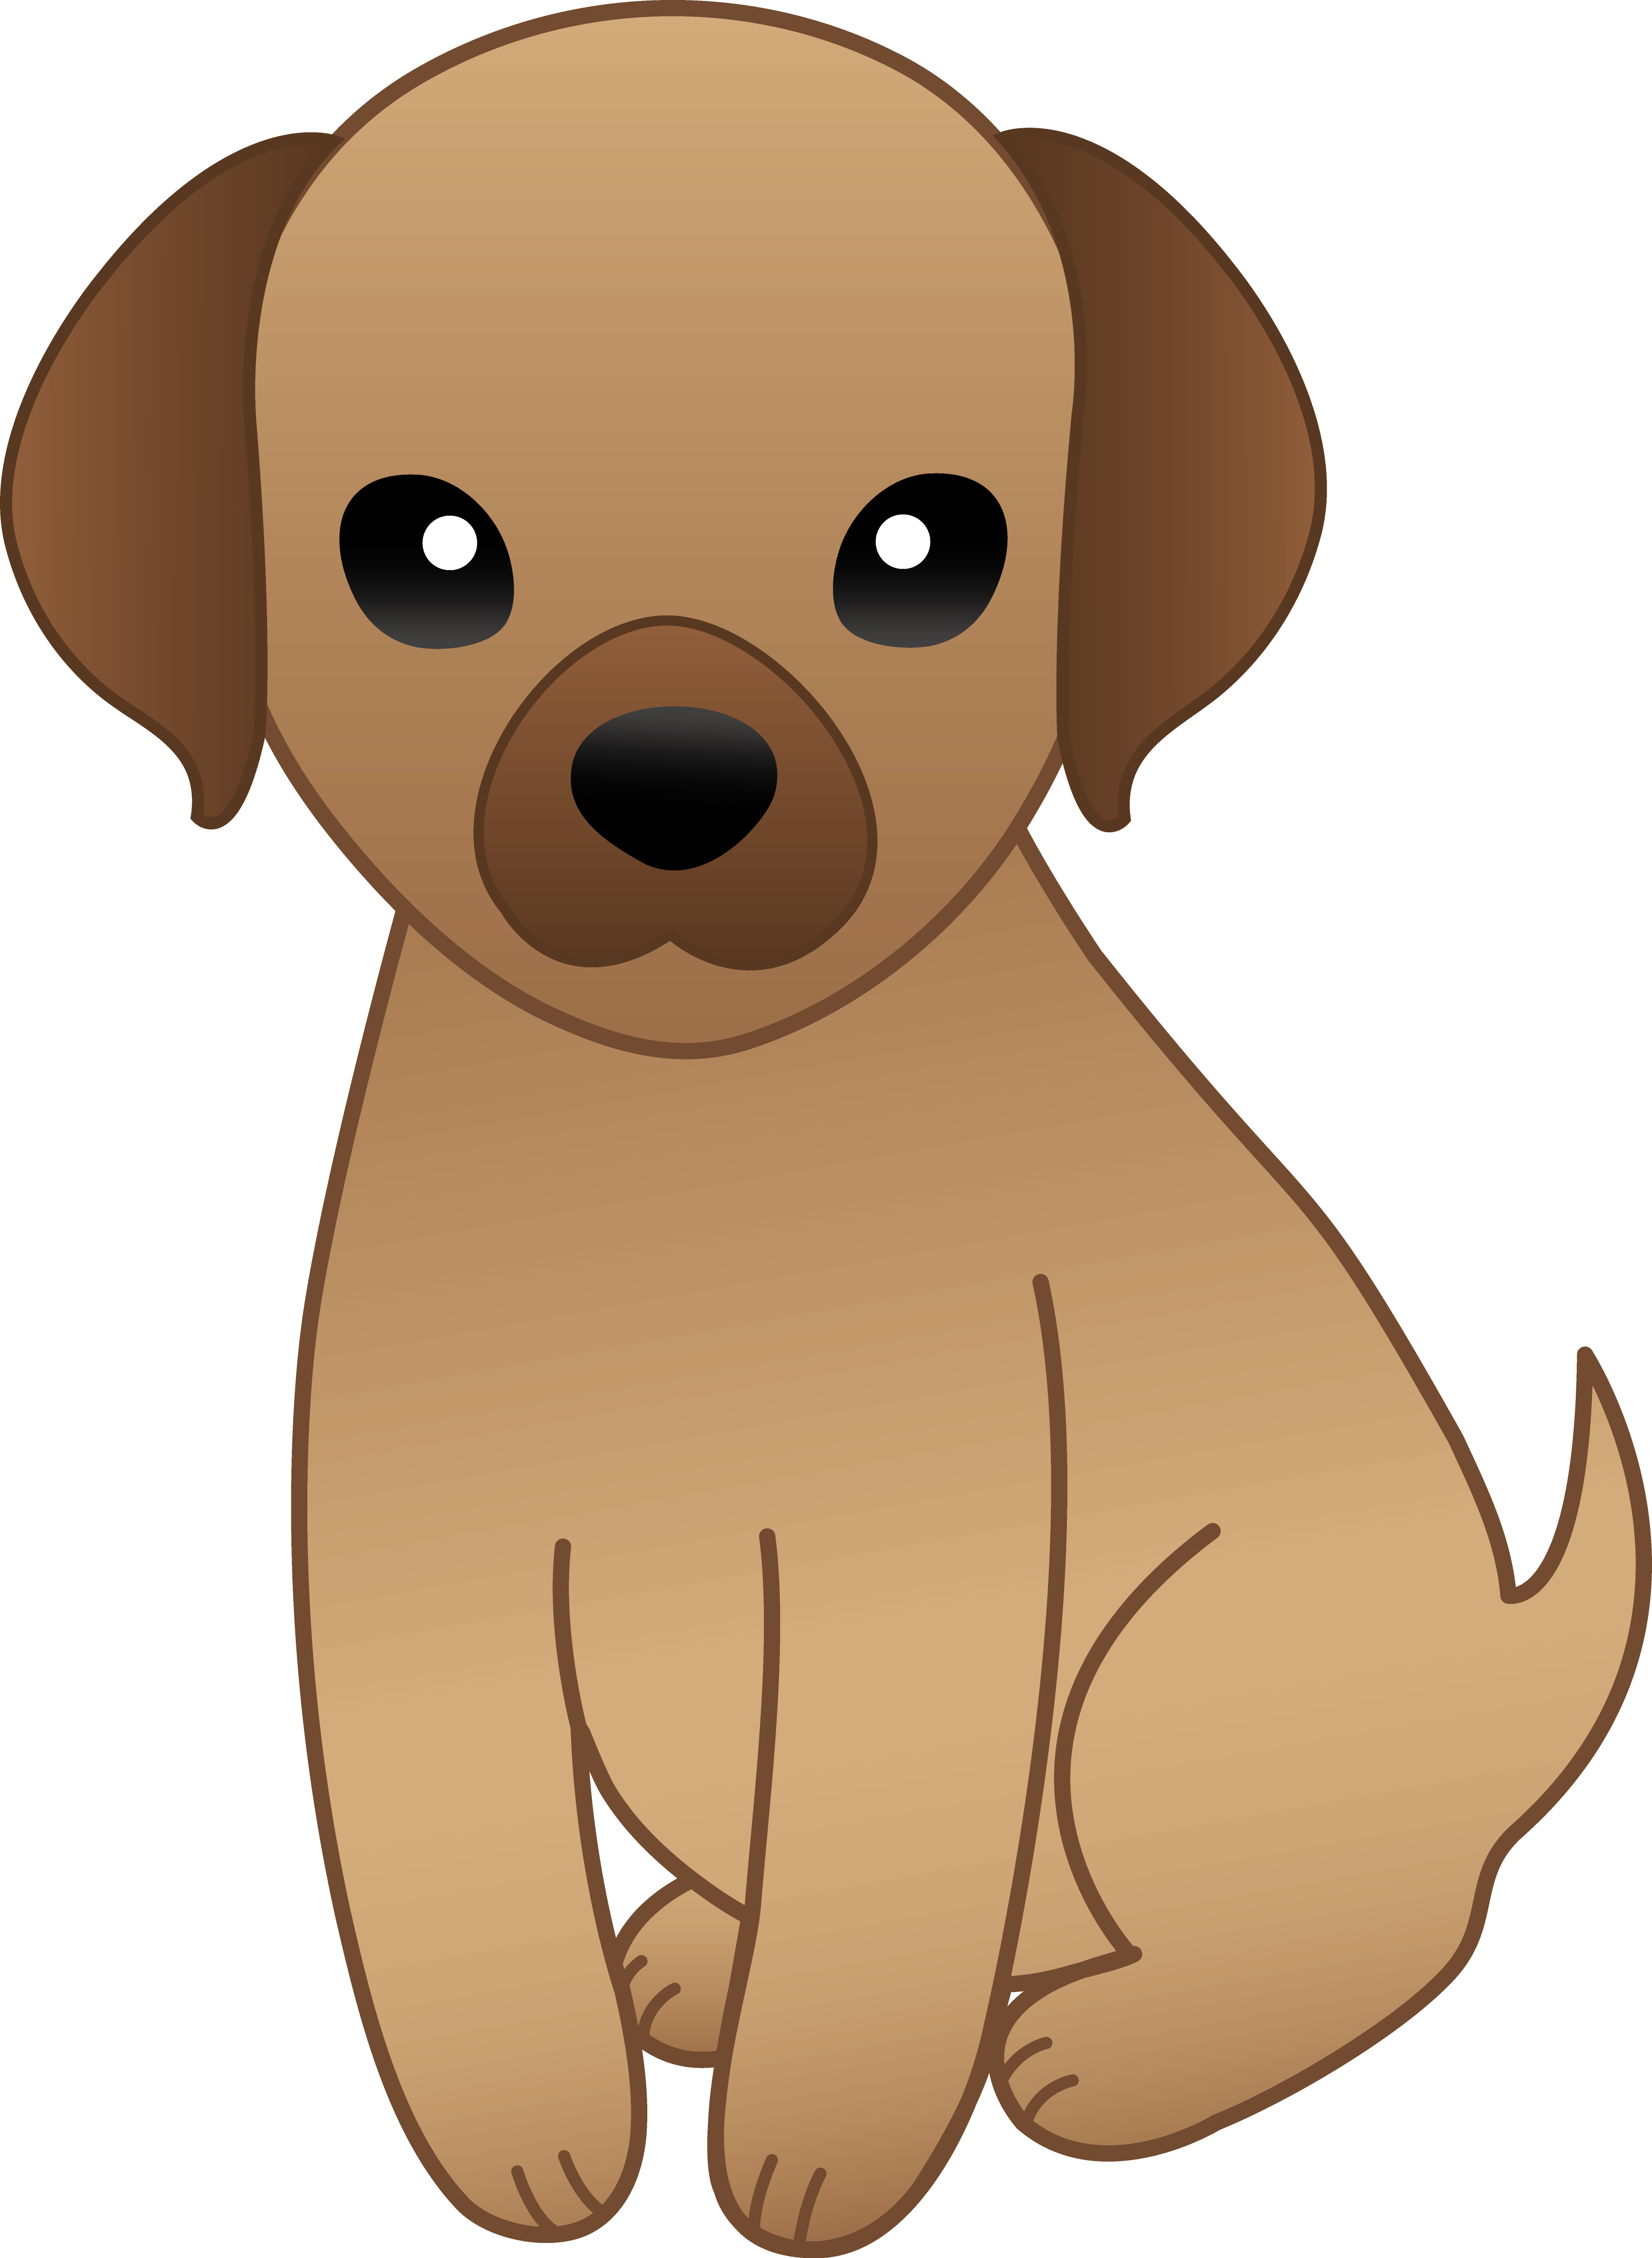 Free Cute Animated Dog, Download Free Clip Art, Free Clip.